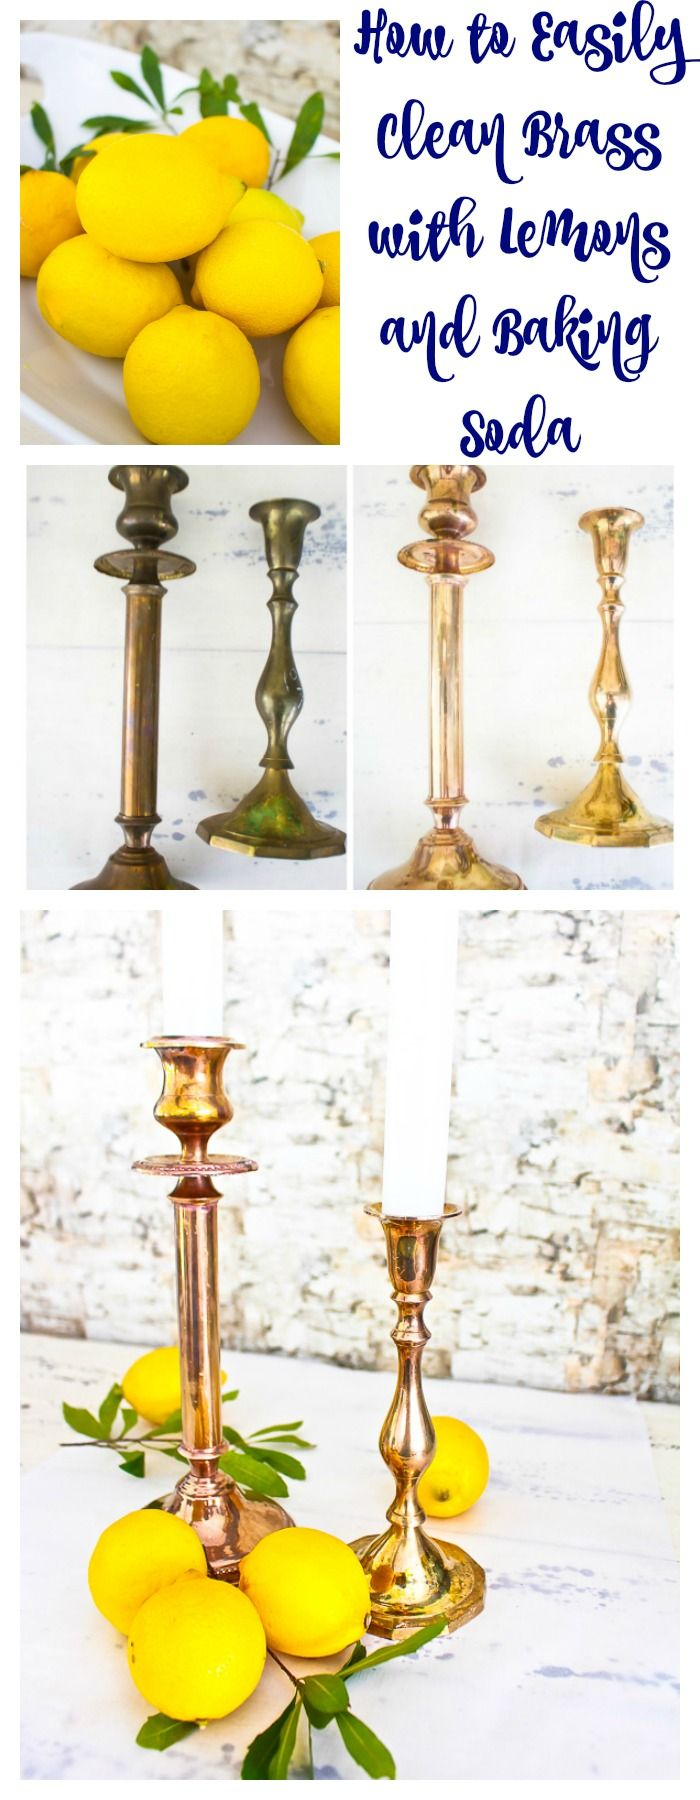 How to Easily Clean Brass. Clean brass using lemon and baking soda. Clean using natural ingredients. Spring cleaning tips.